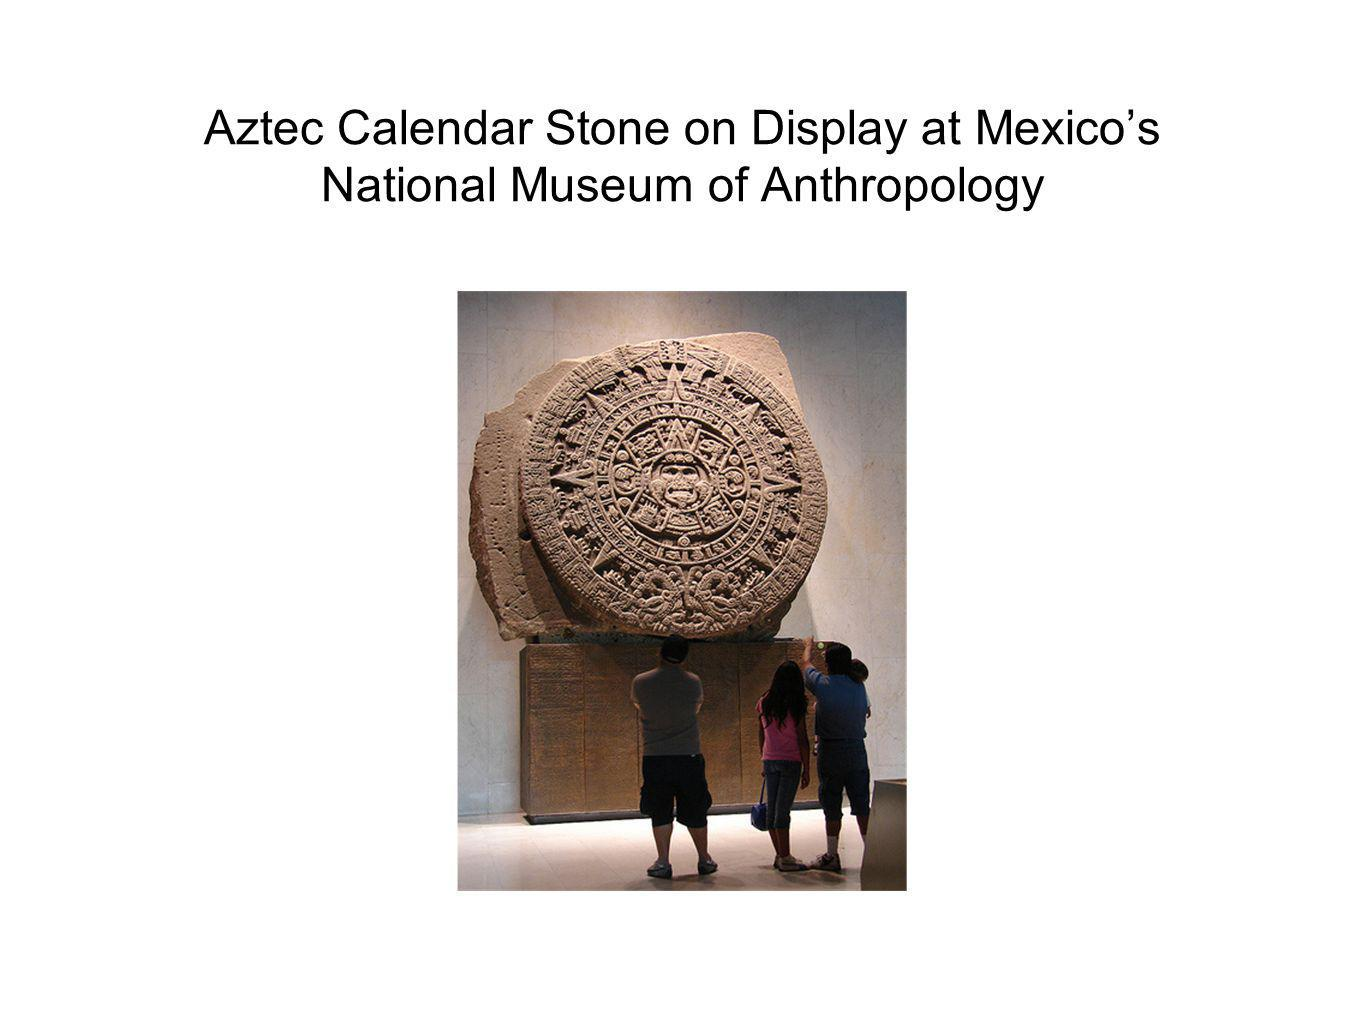 Aztec Calendar Stone on Display at Mexico's National Museum of Anthropology